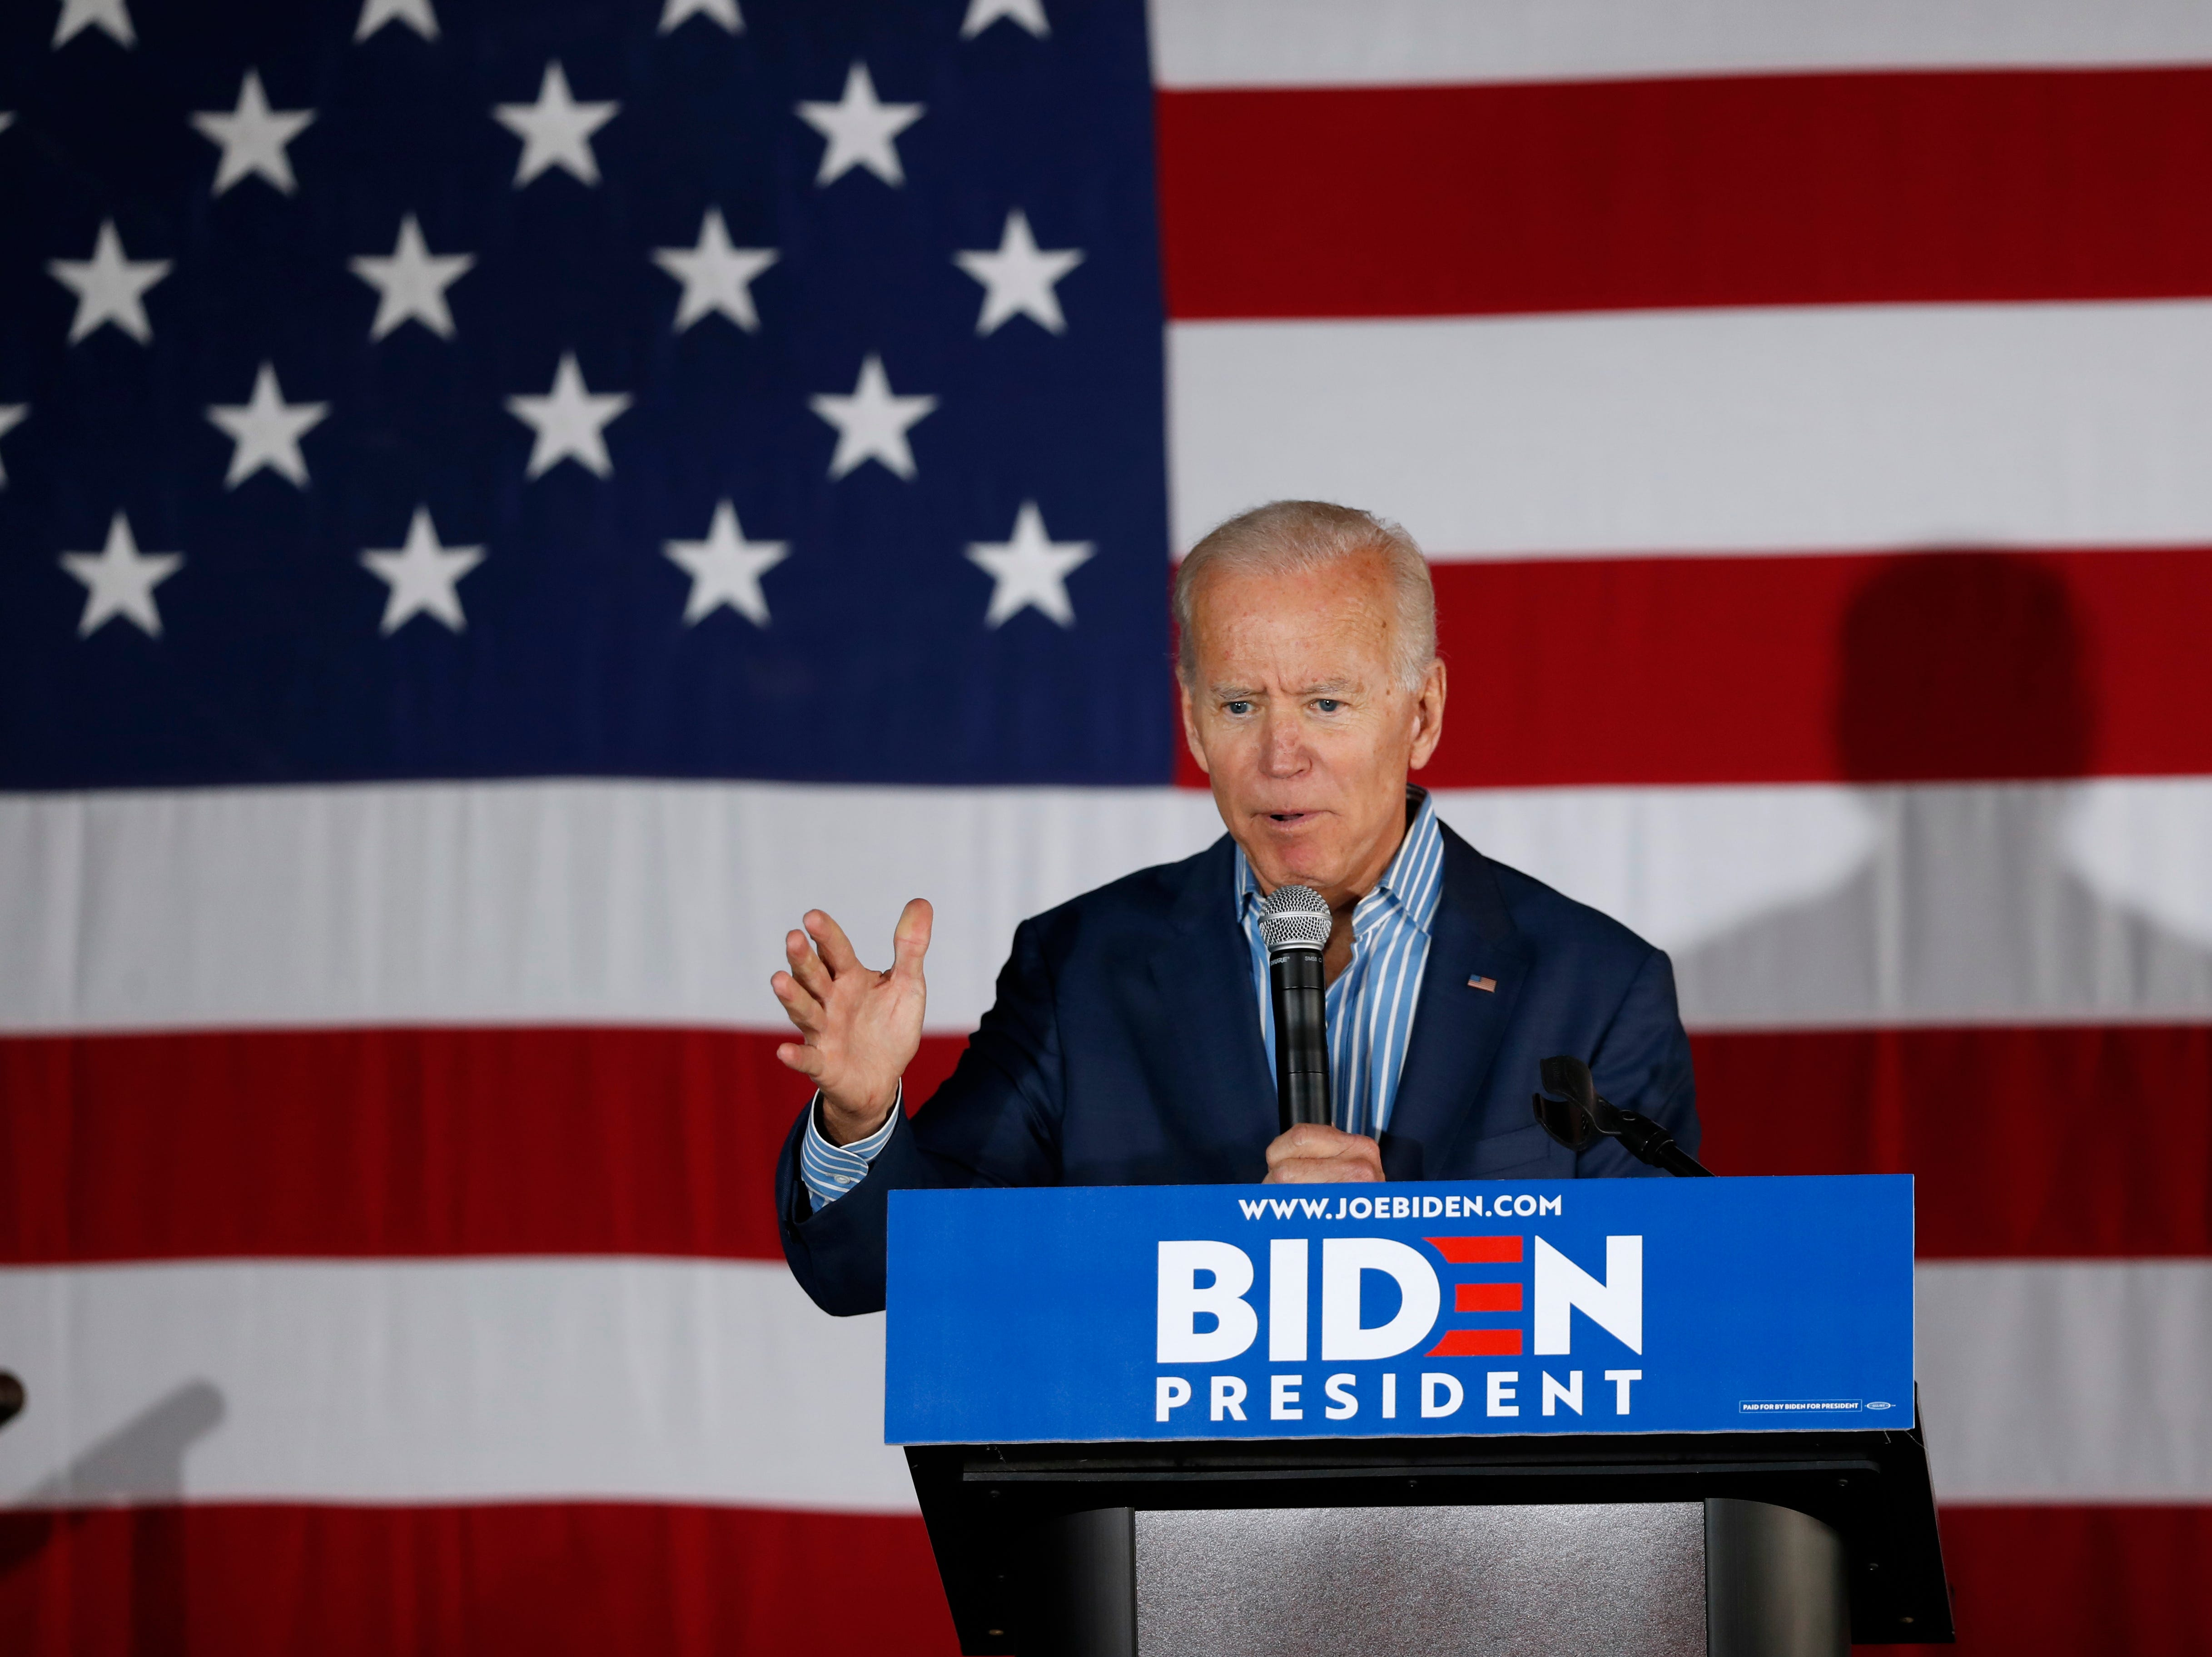 Former Vice President and Democratic presidential candidate Joe Biden speaks during a rally, Wednesday, May 1, 2019, in Iowa City, Iowa.